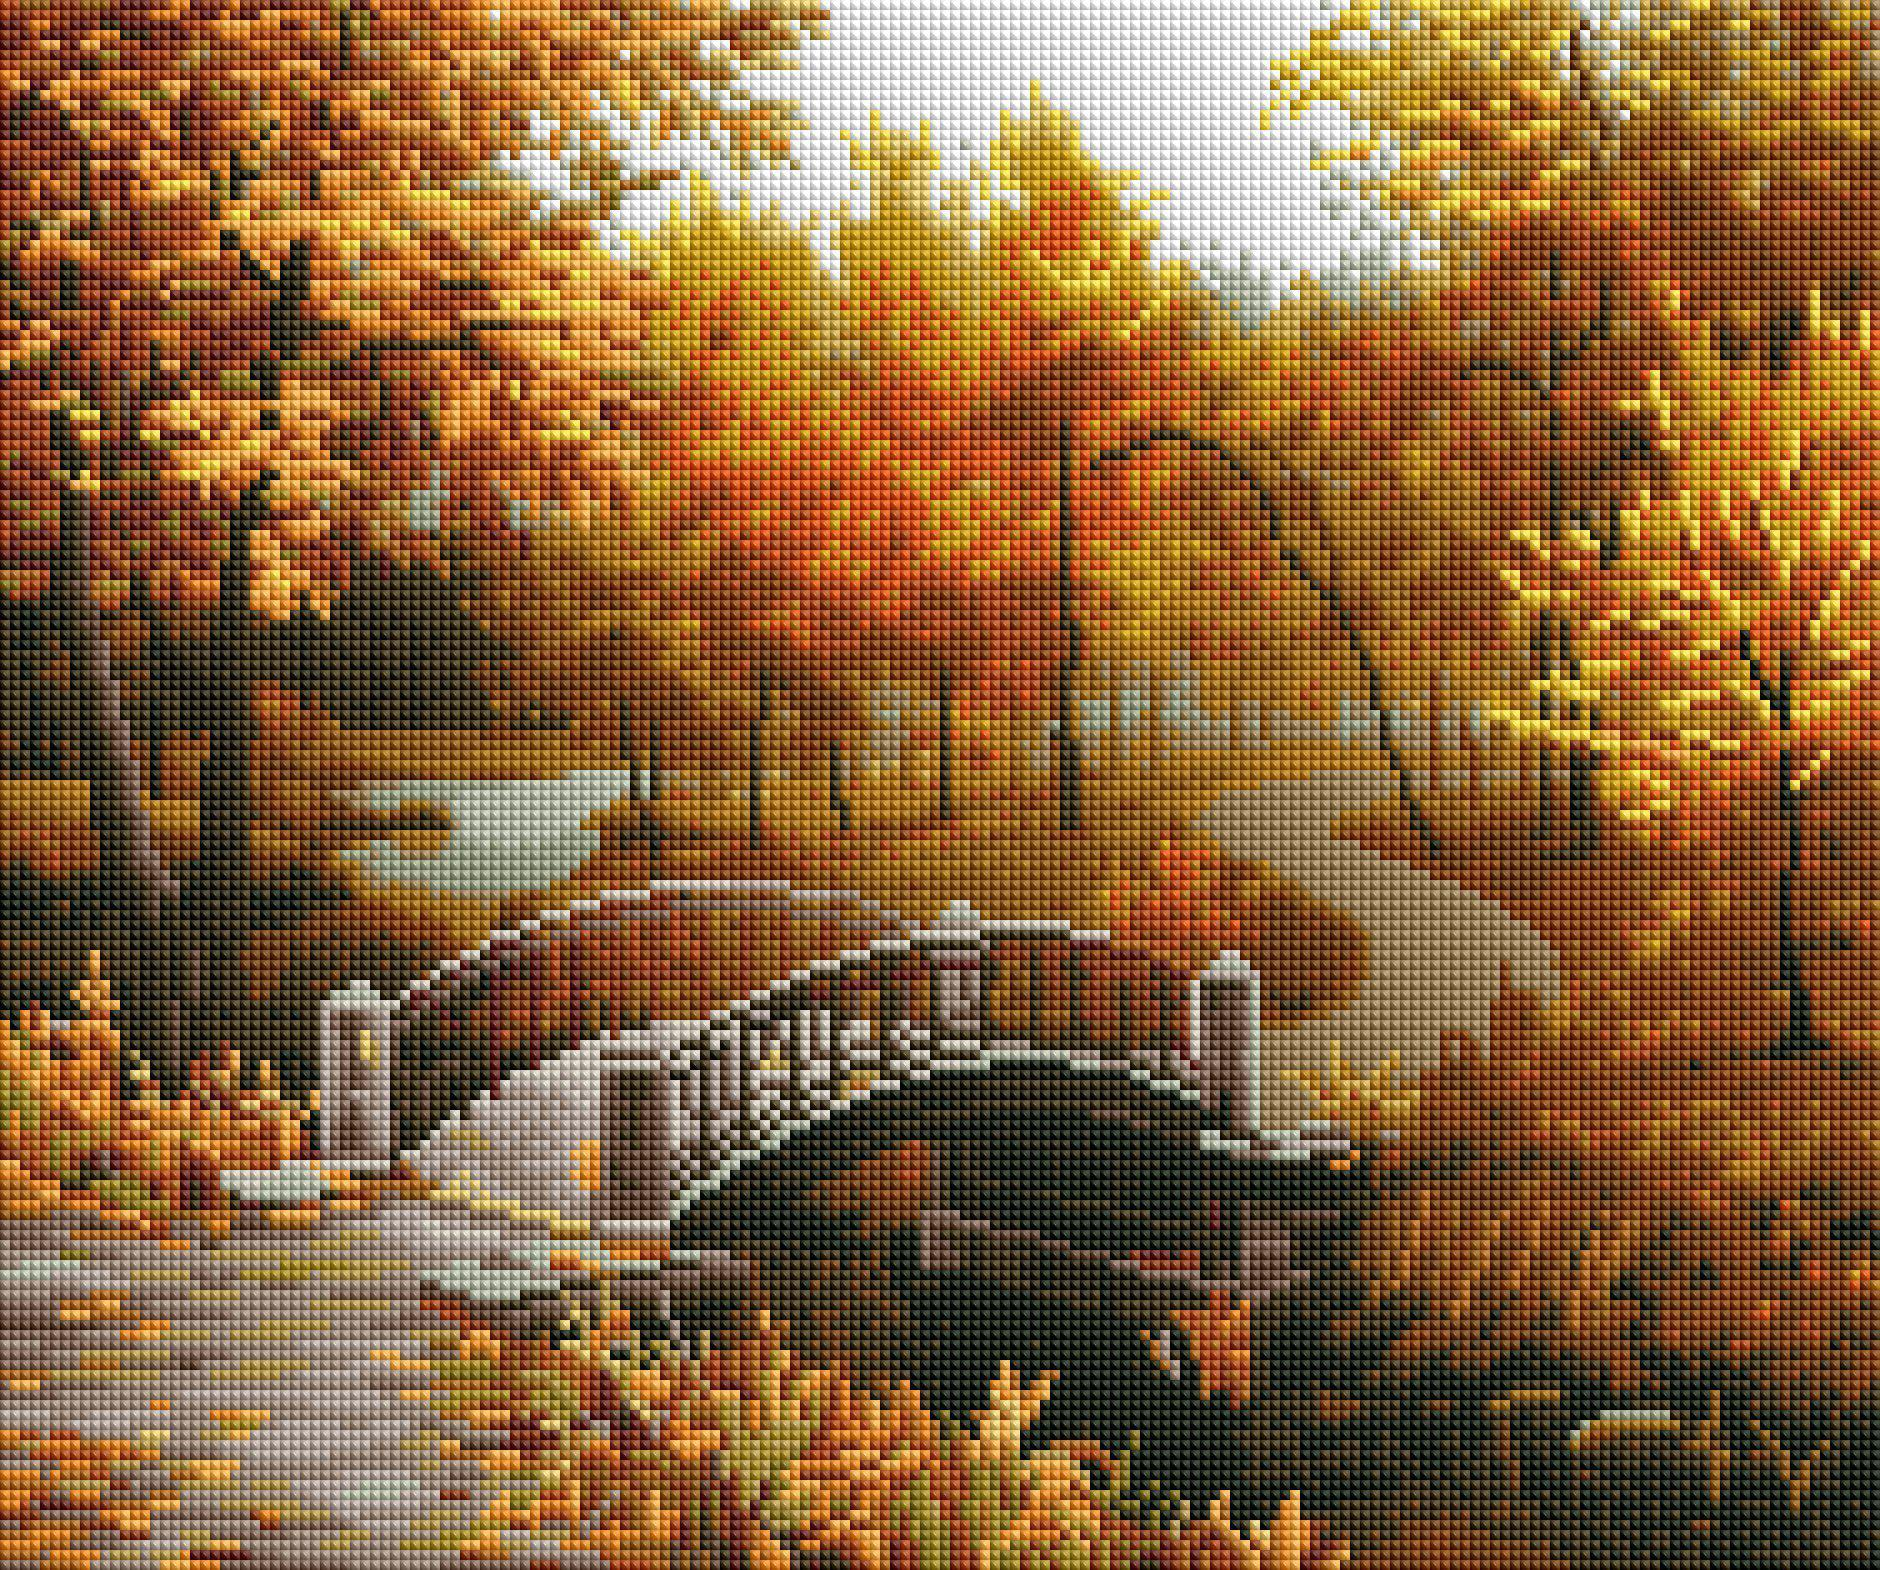 autumn park diamond painting rendering preview by create love share